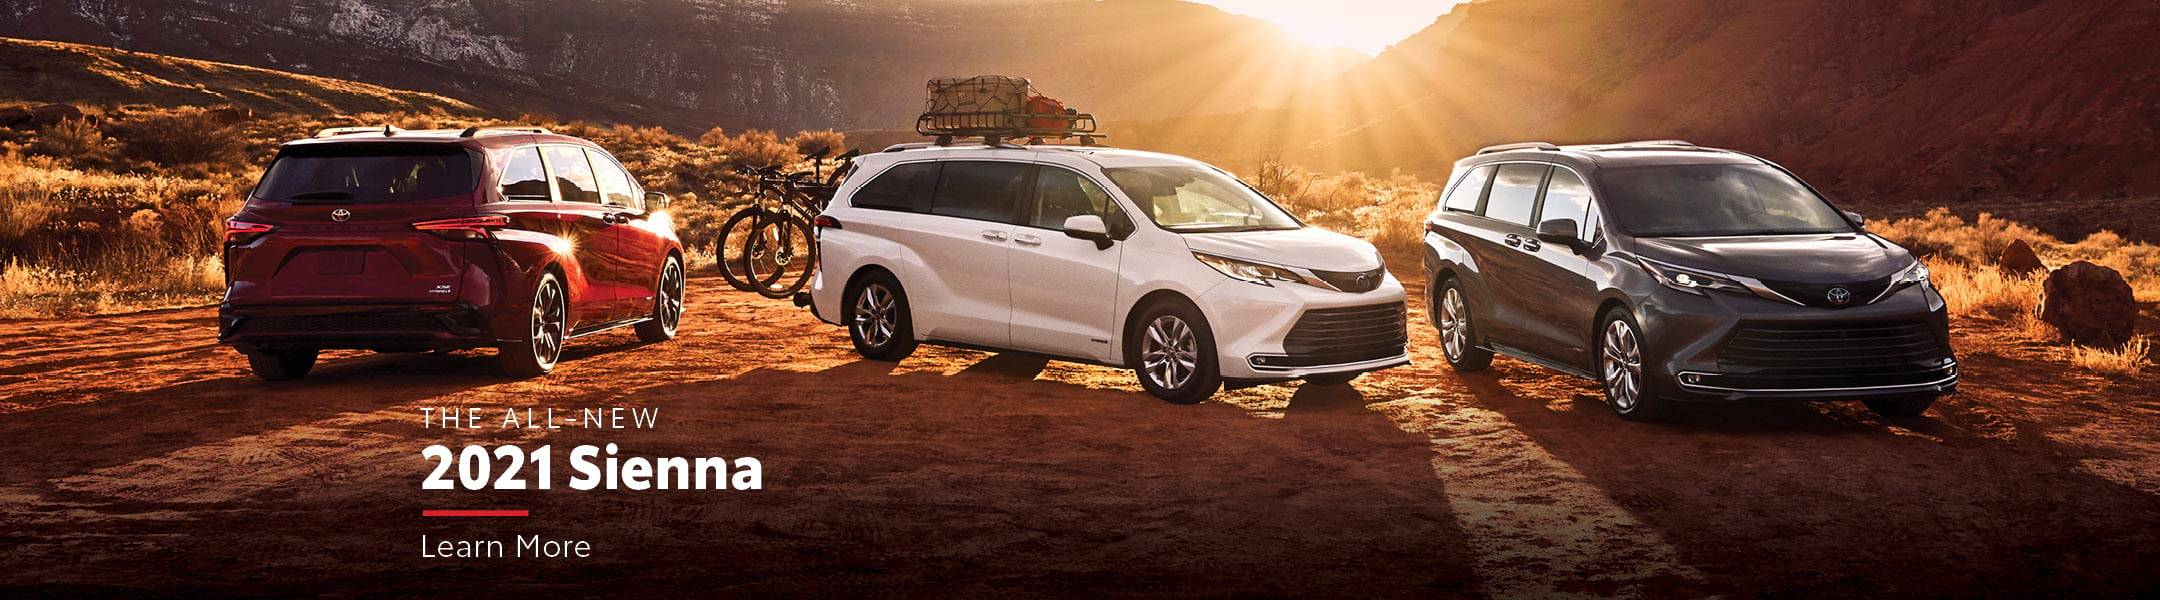 The All New 2021 Sienna. Image of three Toyota Siennas parked off-road. Click link to navigate to 2021 Toyota Sienna Overview page